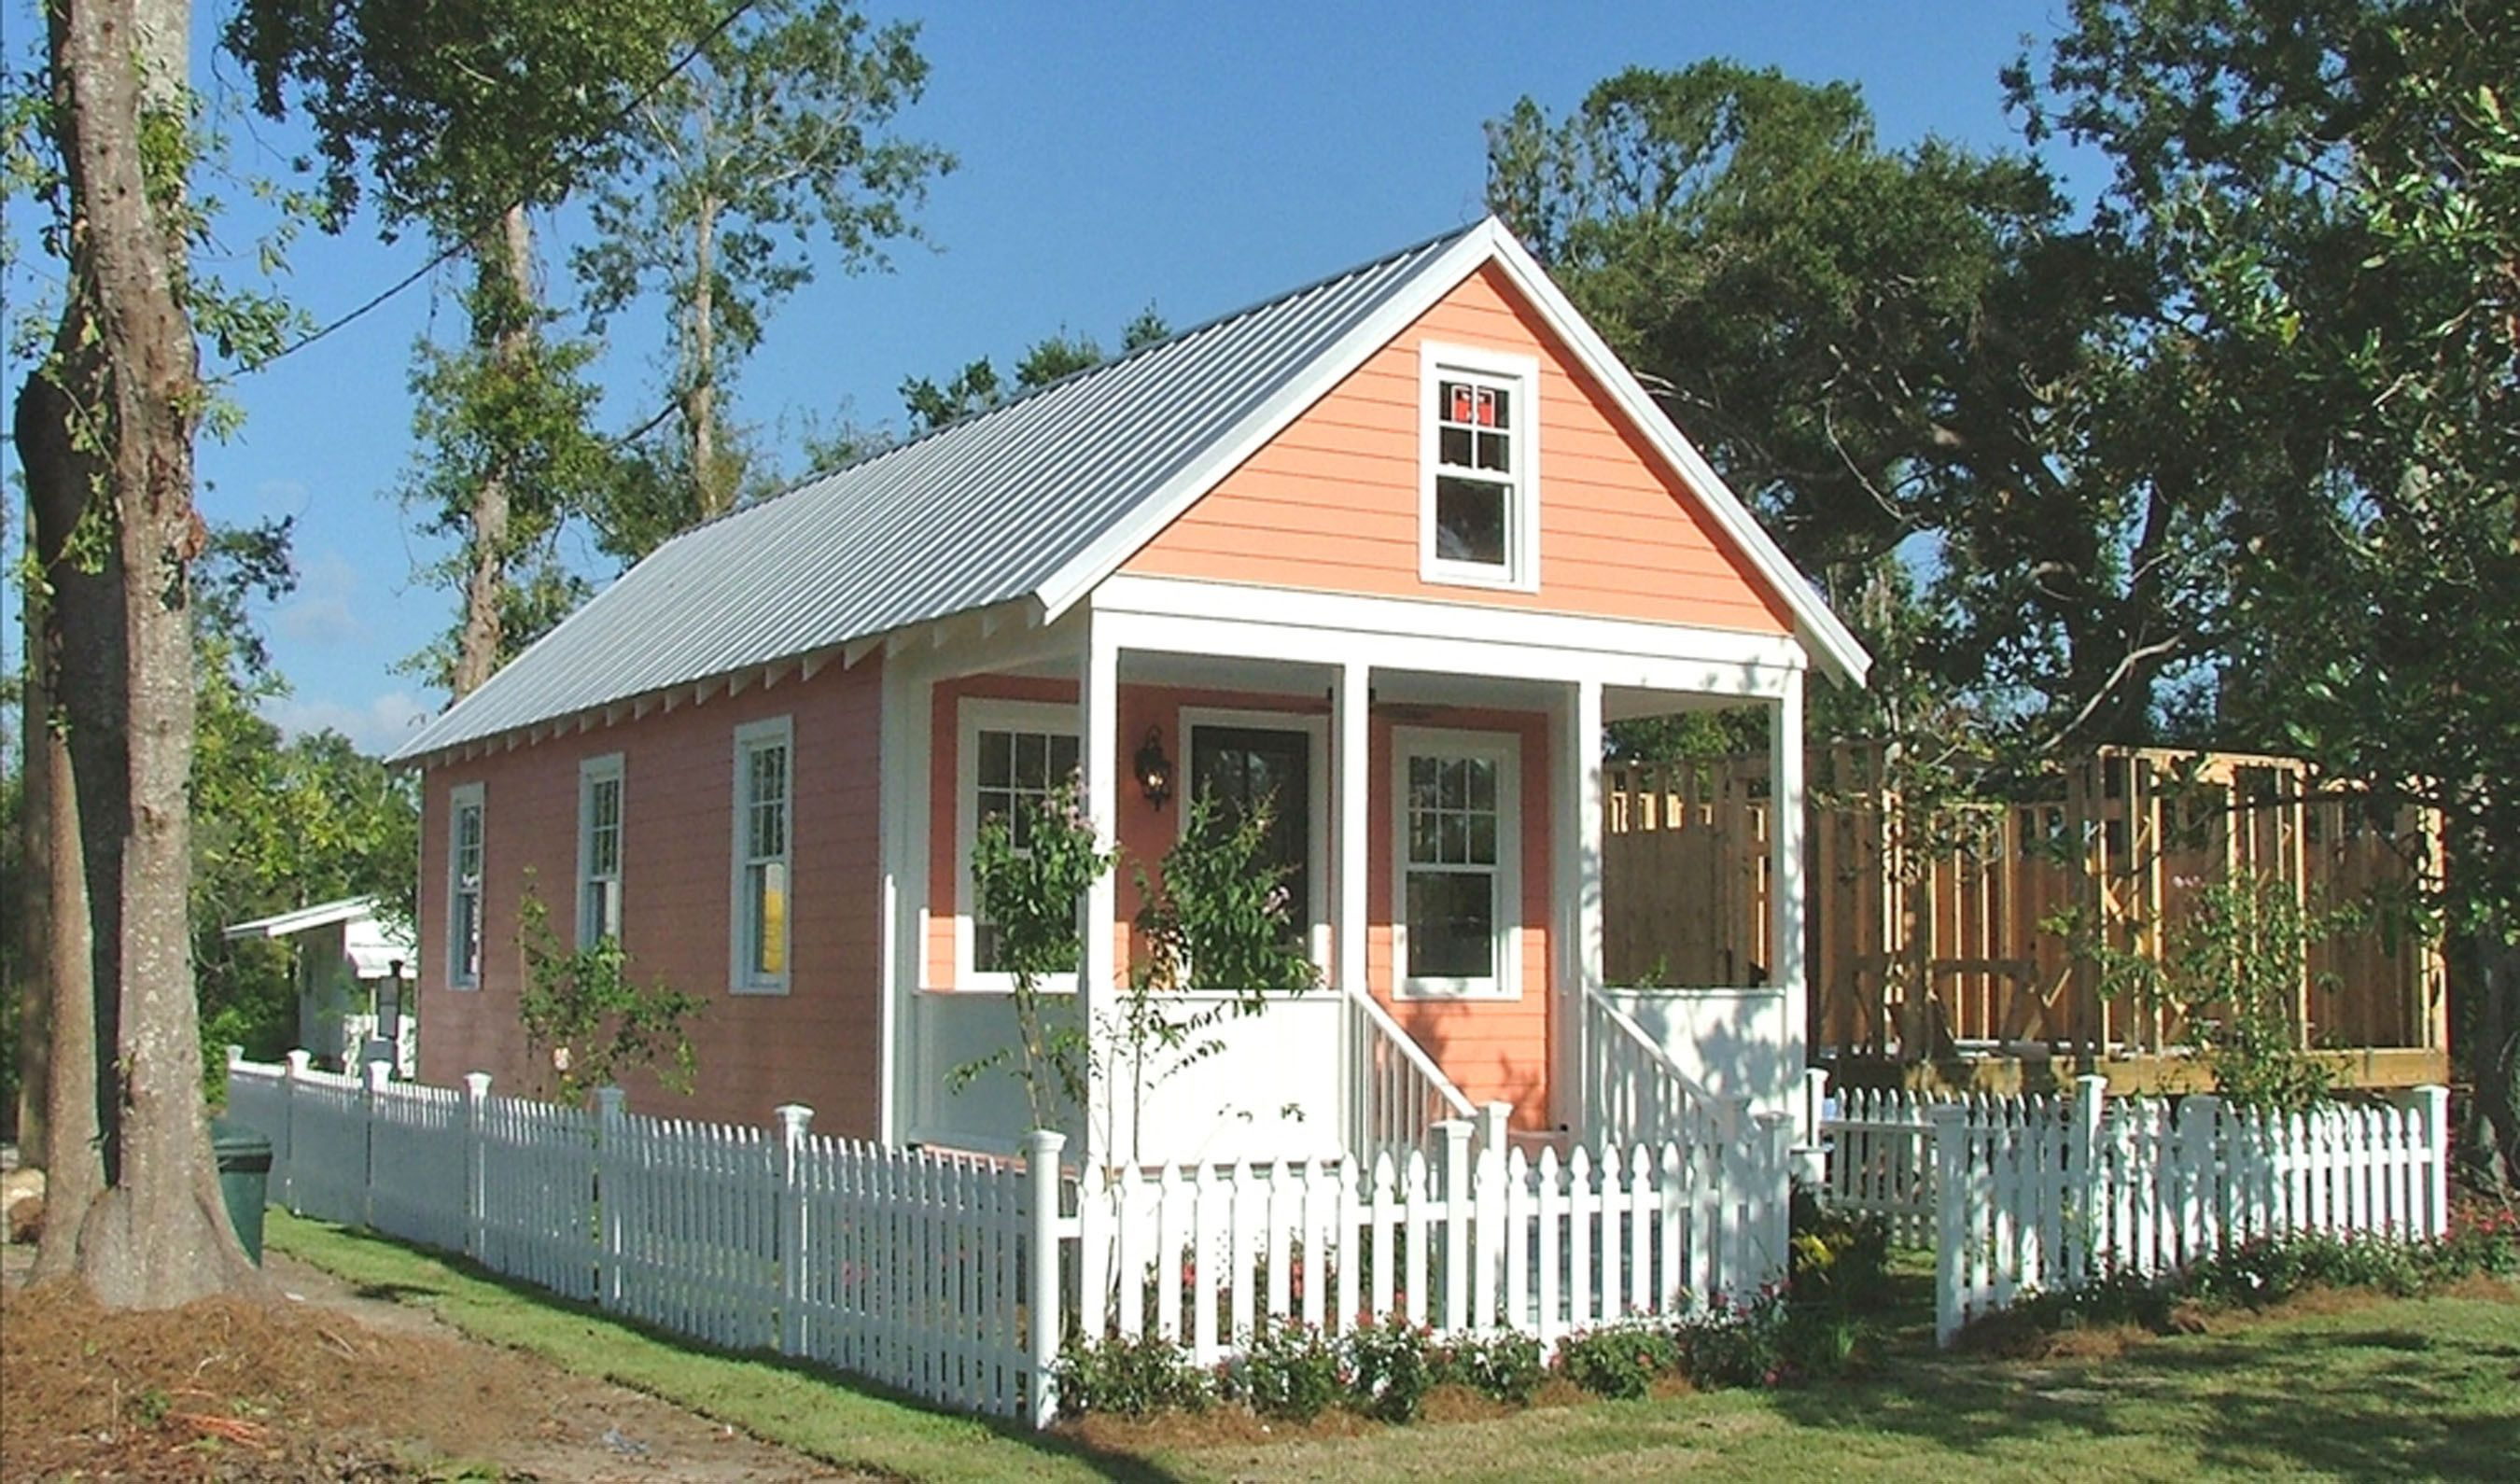 Pin by Jennifer Stephenson on House | Pinterest | Smallest house ...